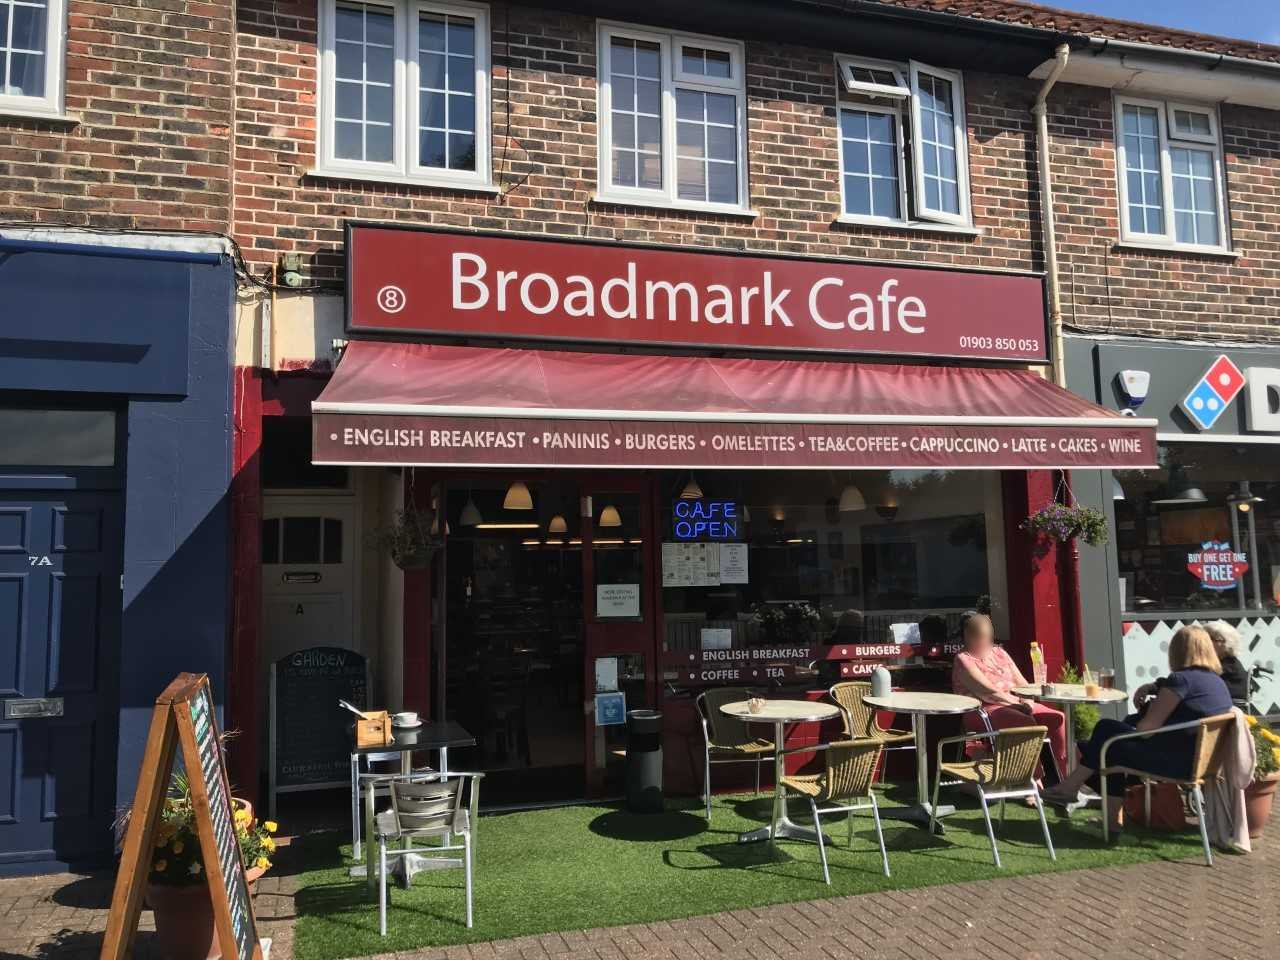 Broadmark Cafe in Rustington (1)